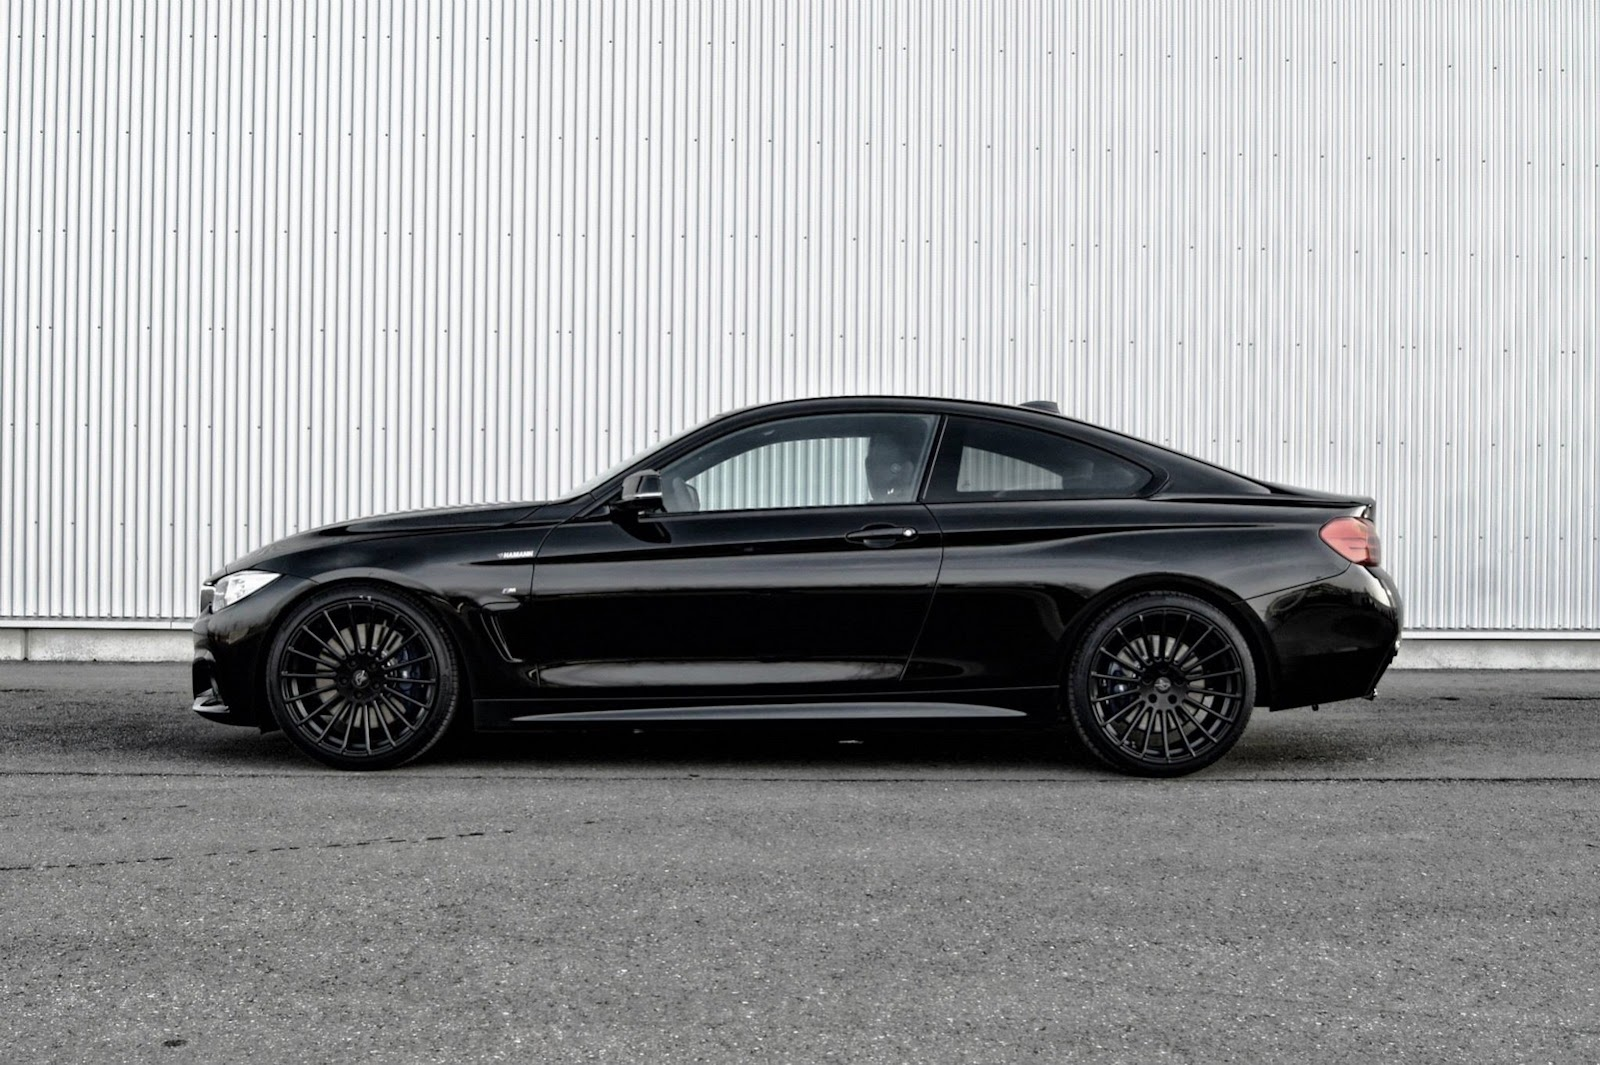 Bmw 4 Series Black Http://www.carscoops.com/2013/